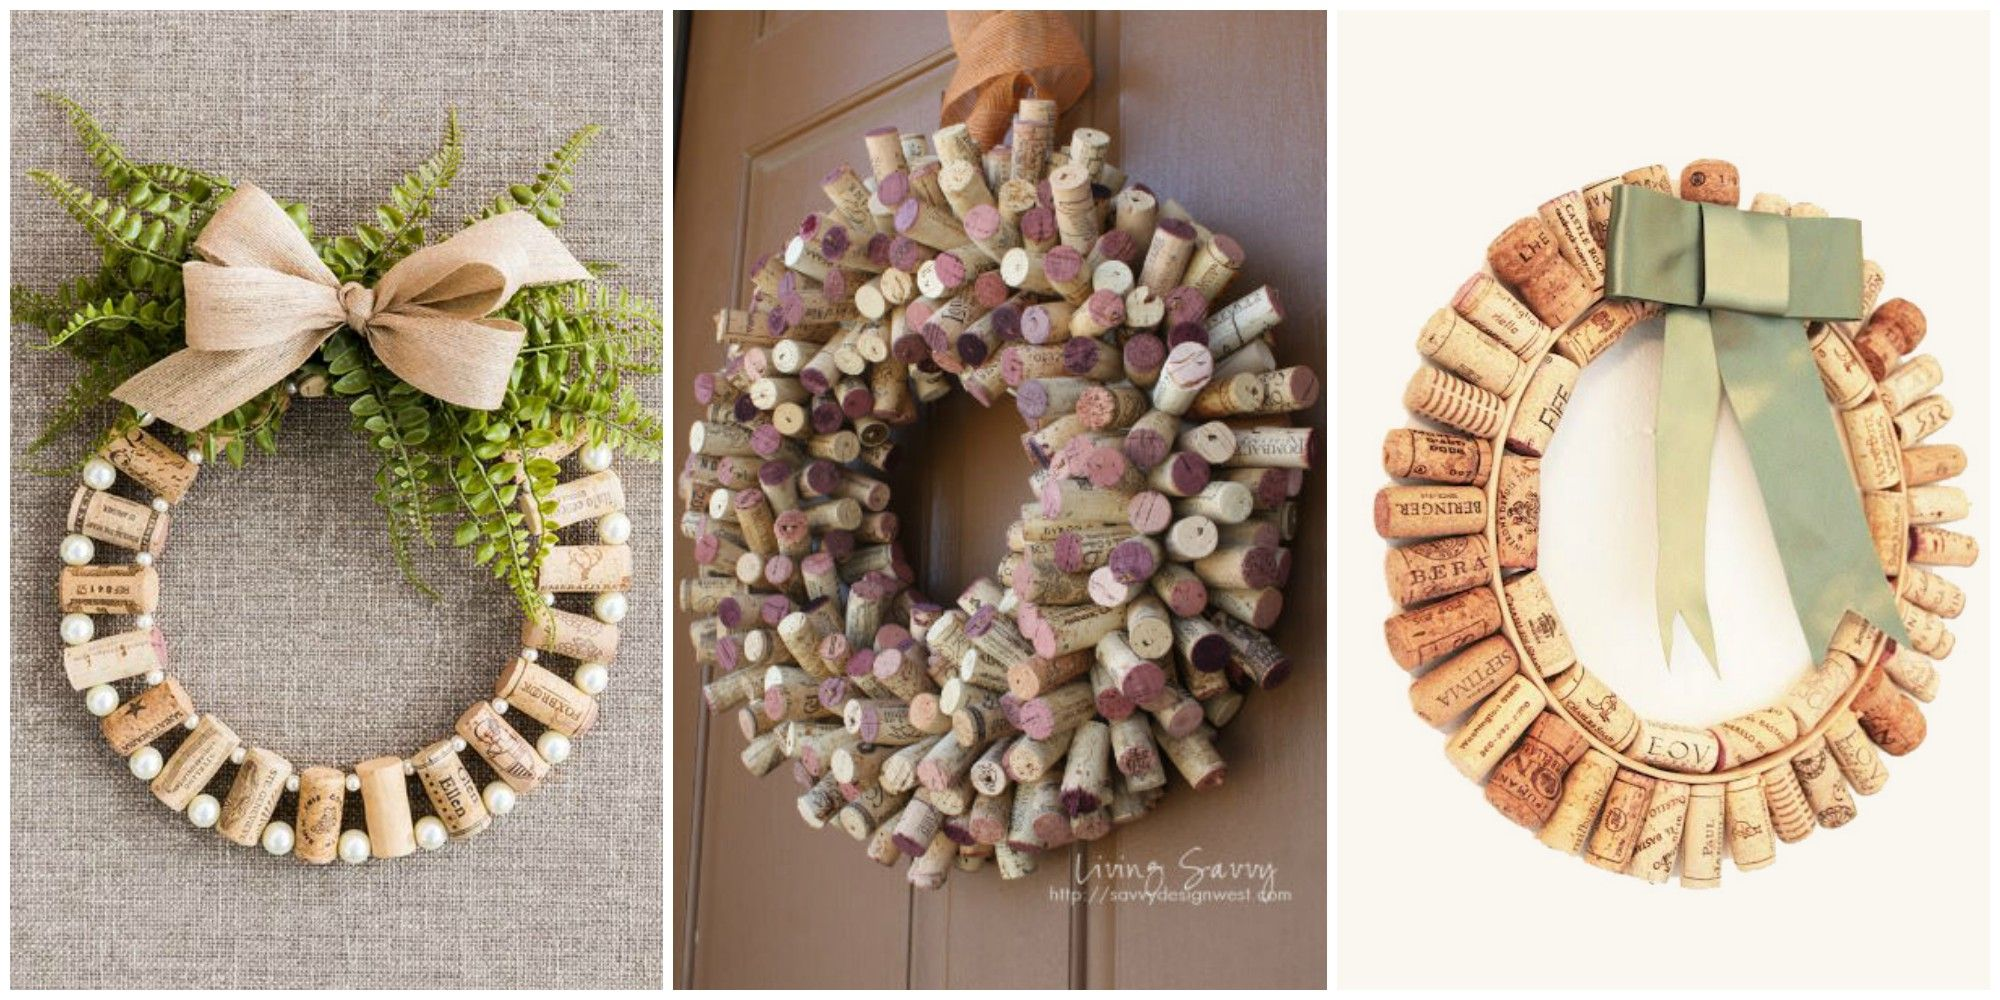 https://hips.hearstapps.com/clv.h-cdn.co/assets/17/07/1487022641-wine-cork-wreaths-diy-ideas-inspiration.jpg